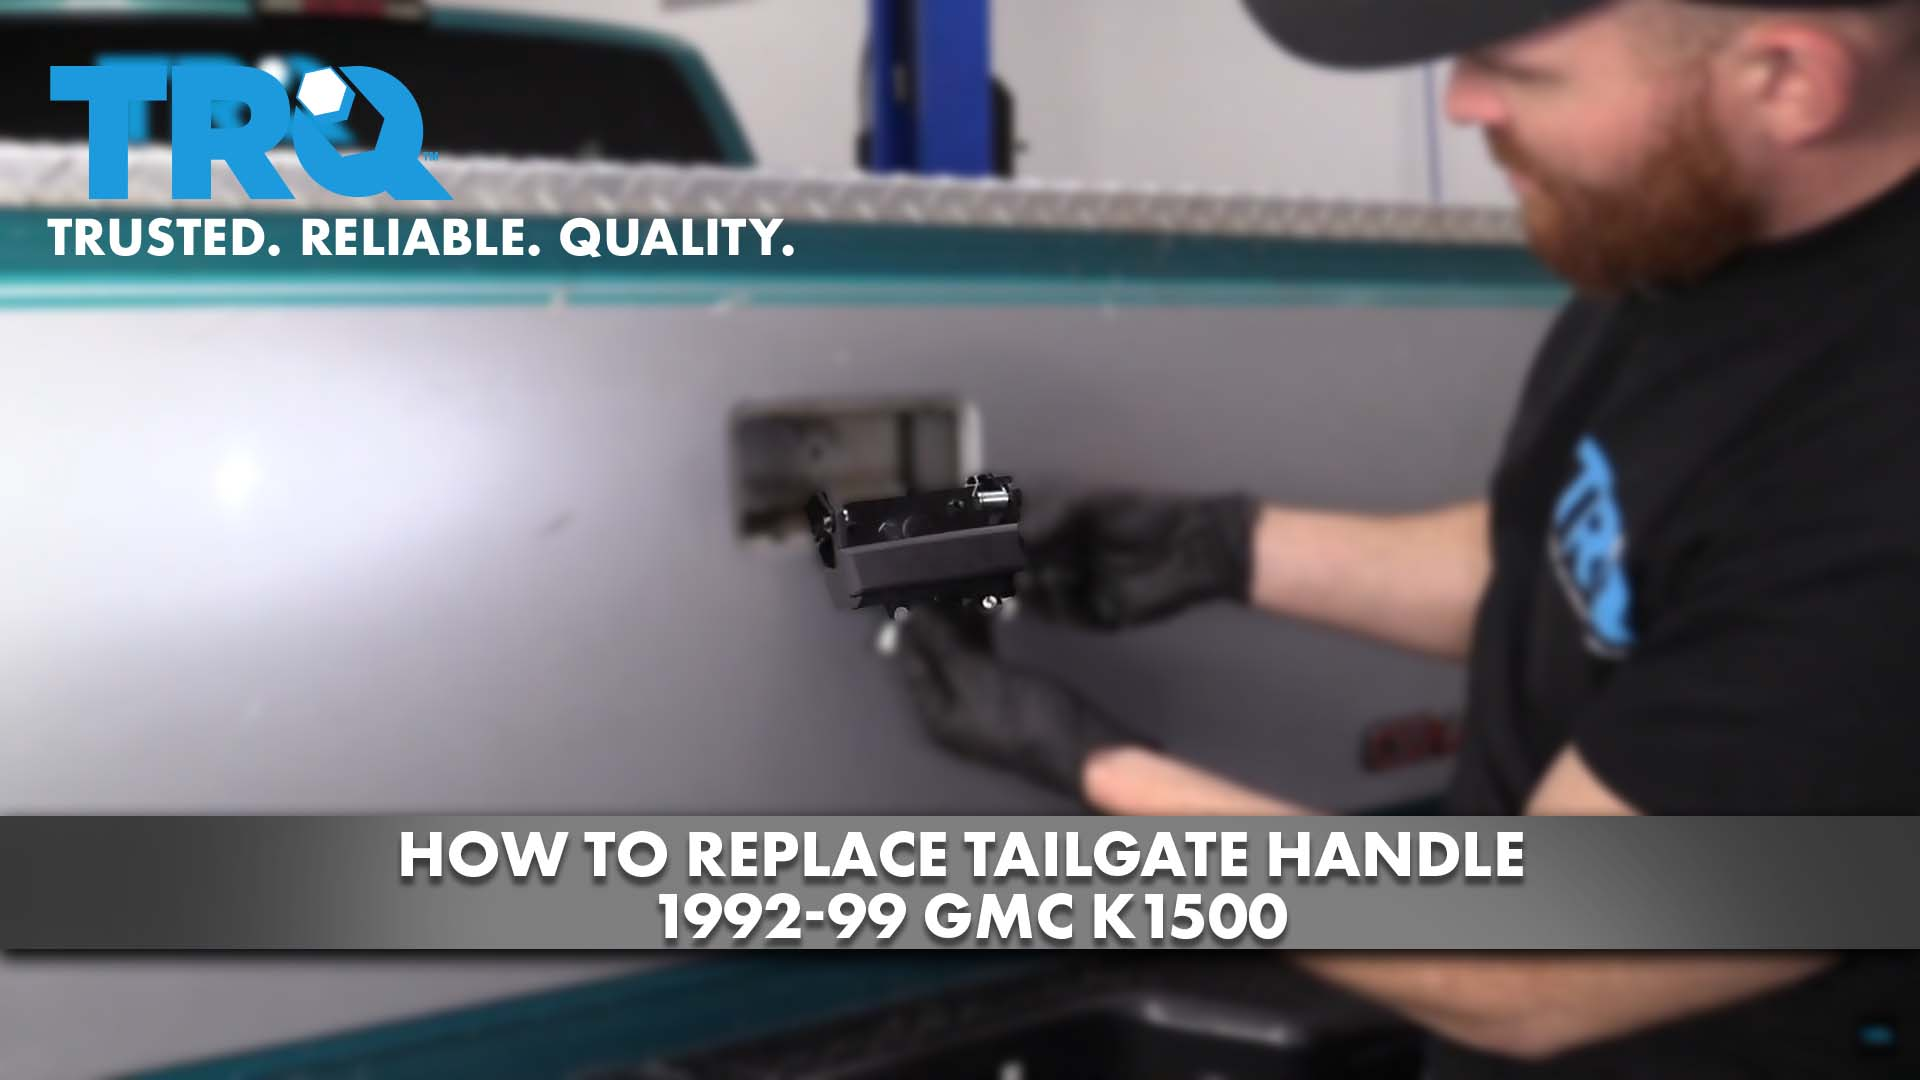 How To Replace Tailgate Handle 1992-99 GMC K1500